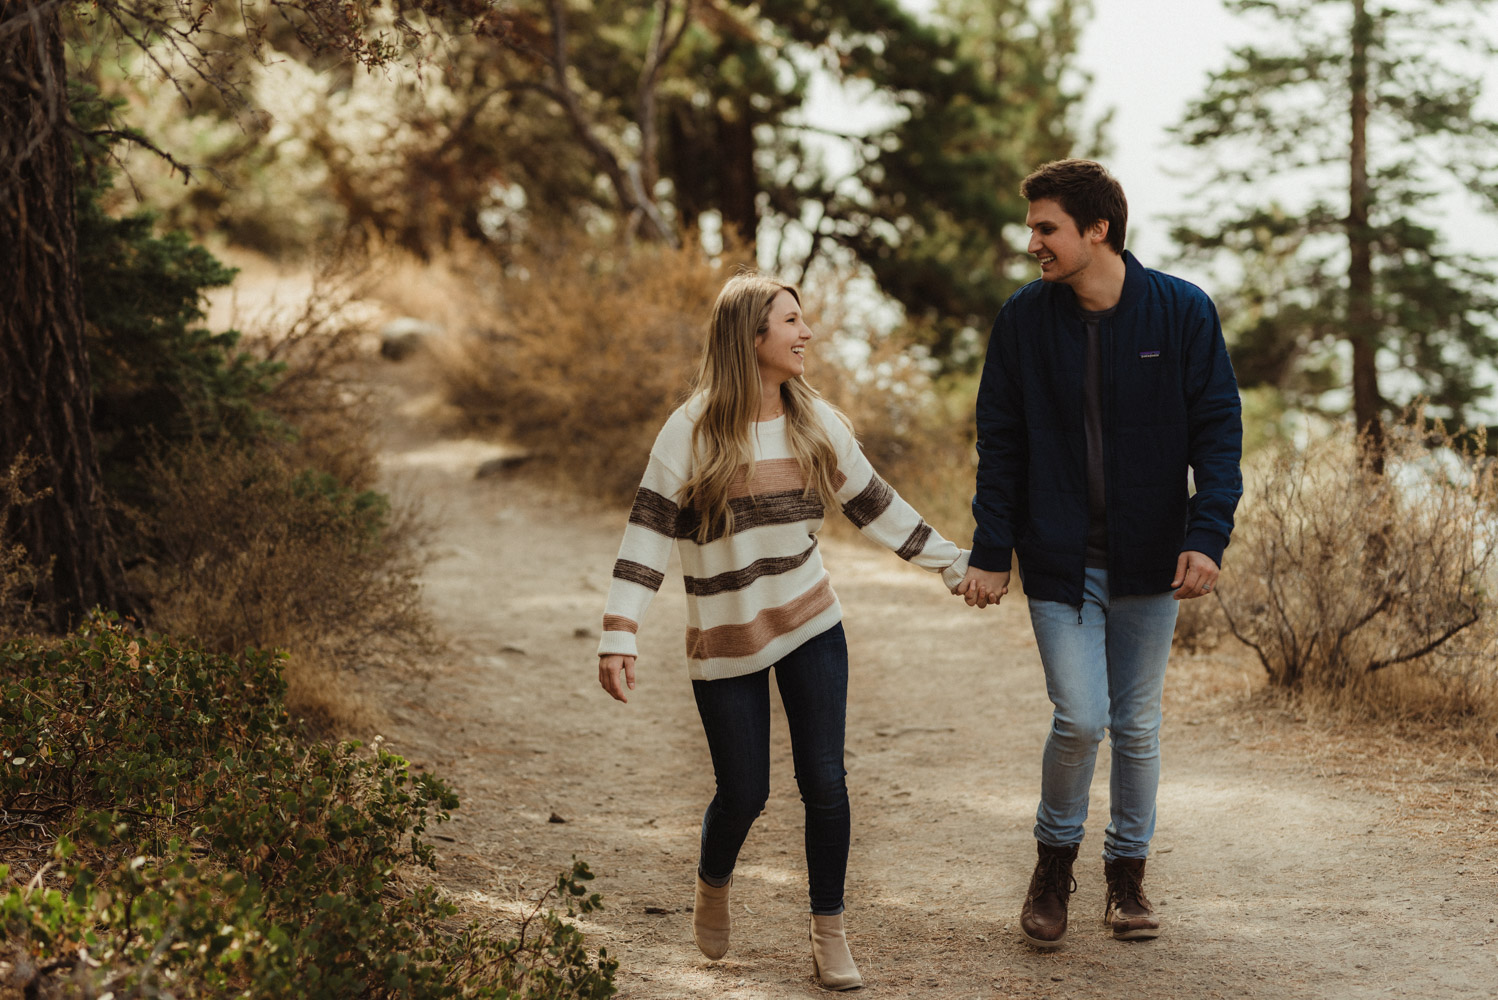 Cave Rock engagement session inspiration at Lake Tahoe,  couple walking in the forest photo